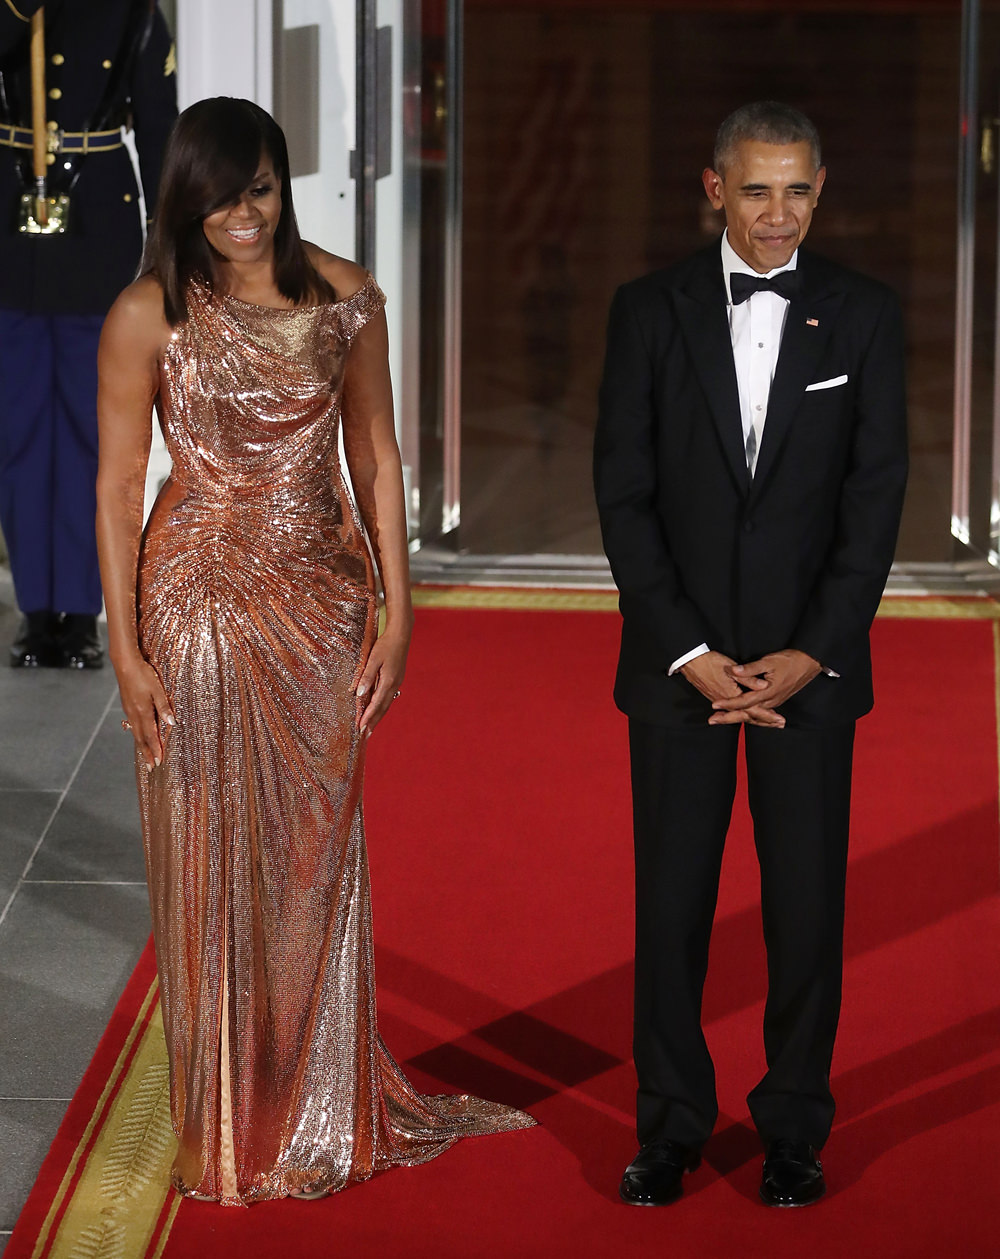 Michelle Obama in Atelier Versace & President Barack Obama at the final White House State Dinner